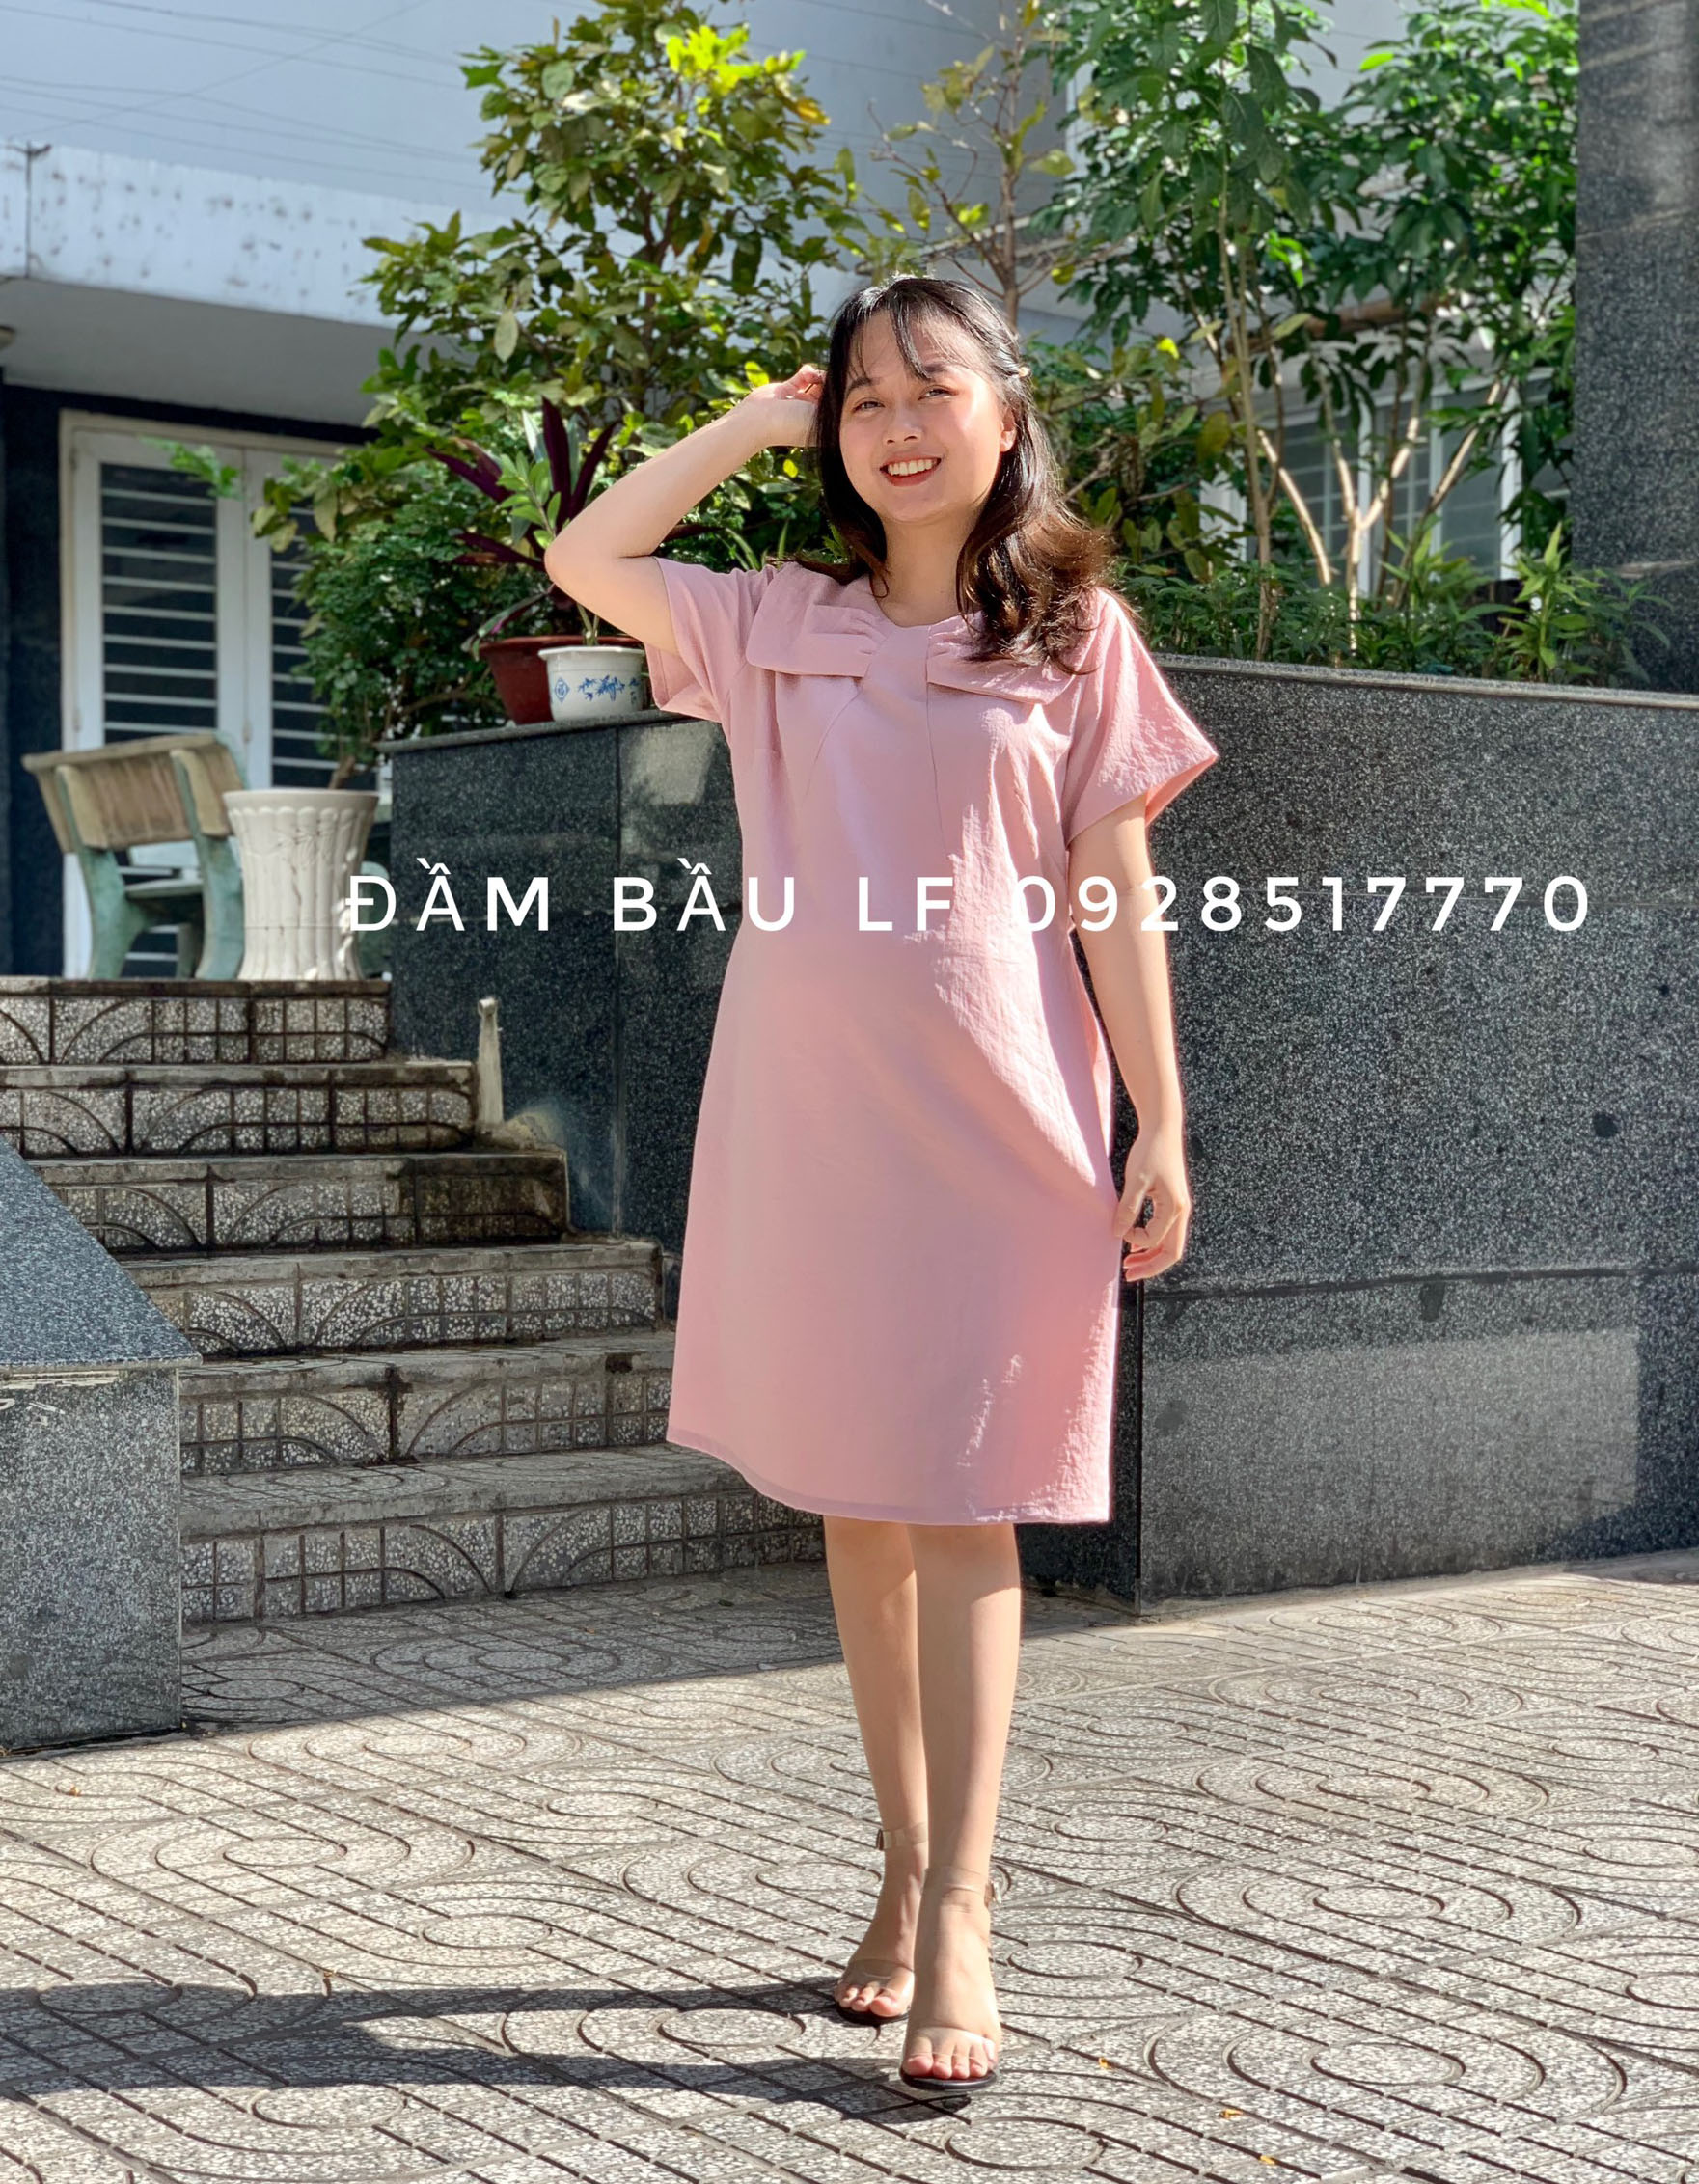 https://lovefashion.com.vn/dam-bau-lennin-dm79a